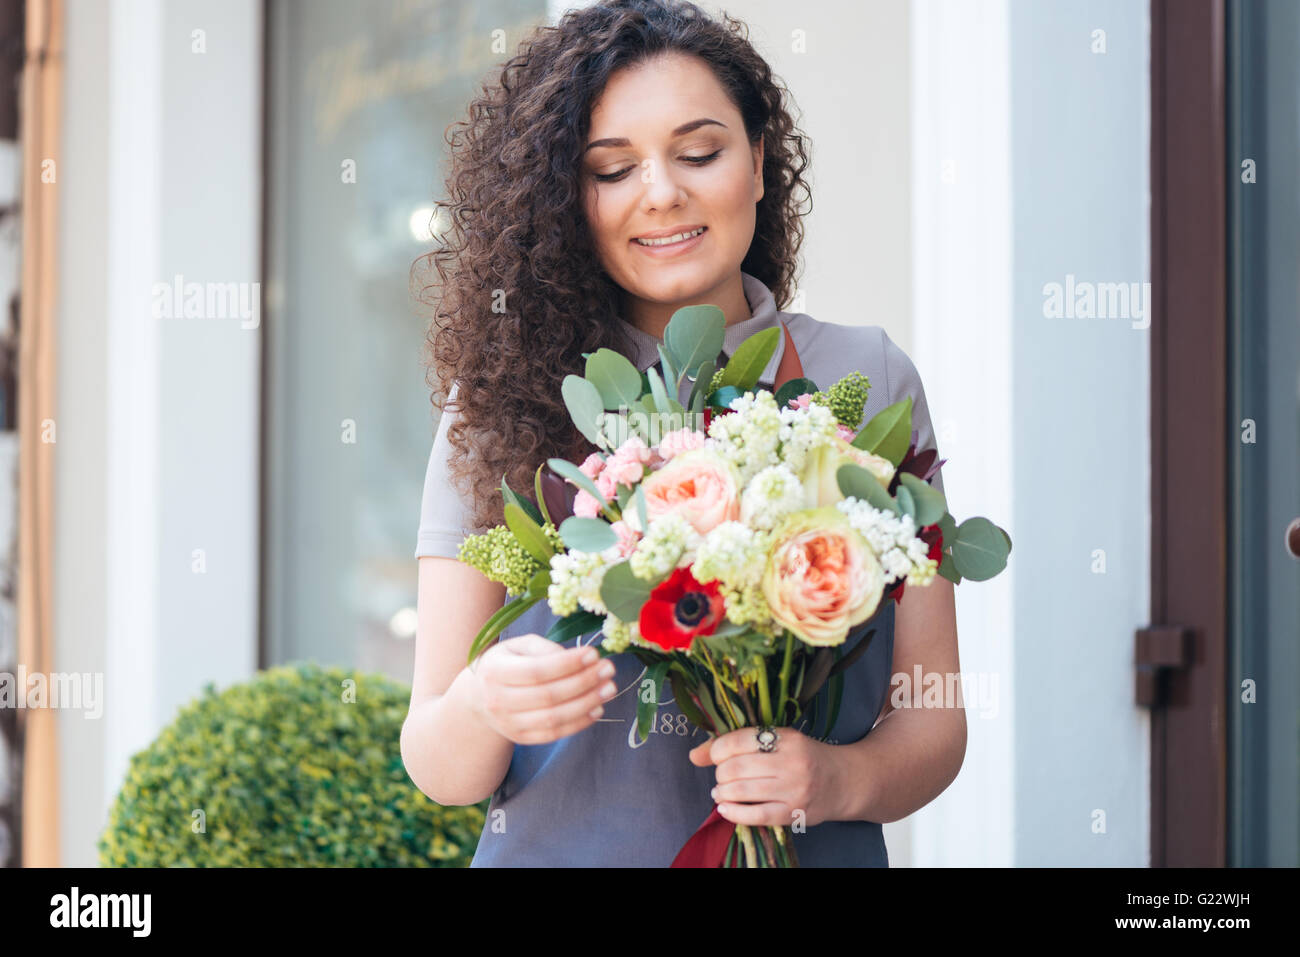 Smiling cute young woman florist with flower bouquet standing in front of shop - Stock Image